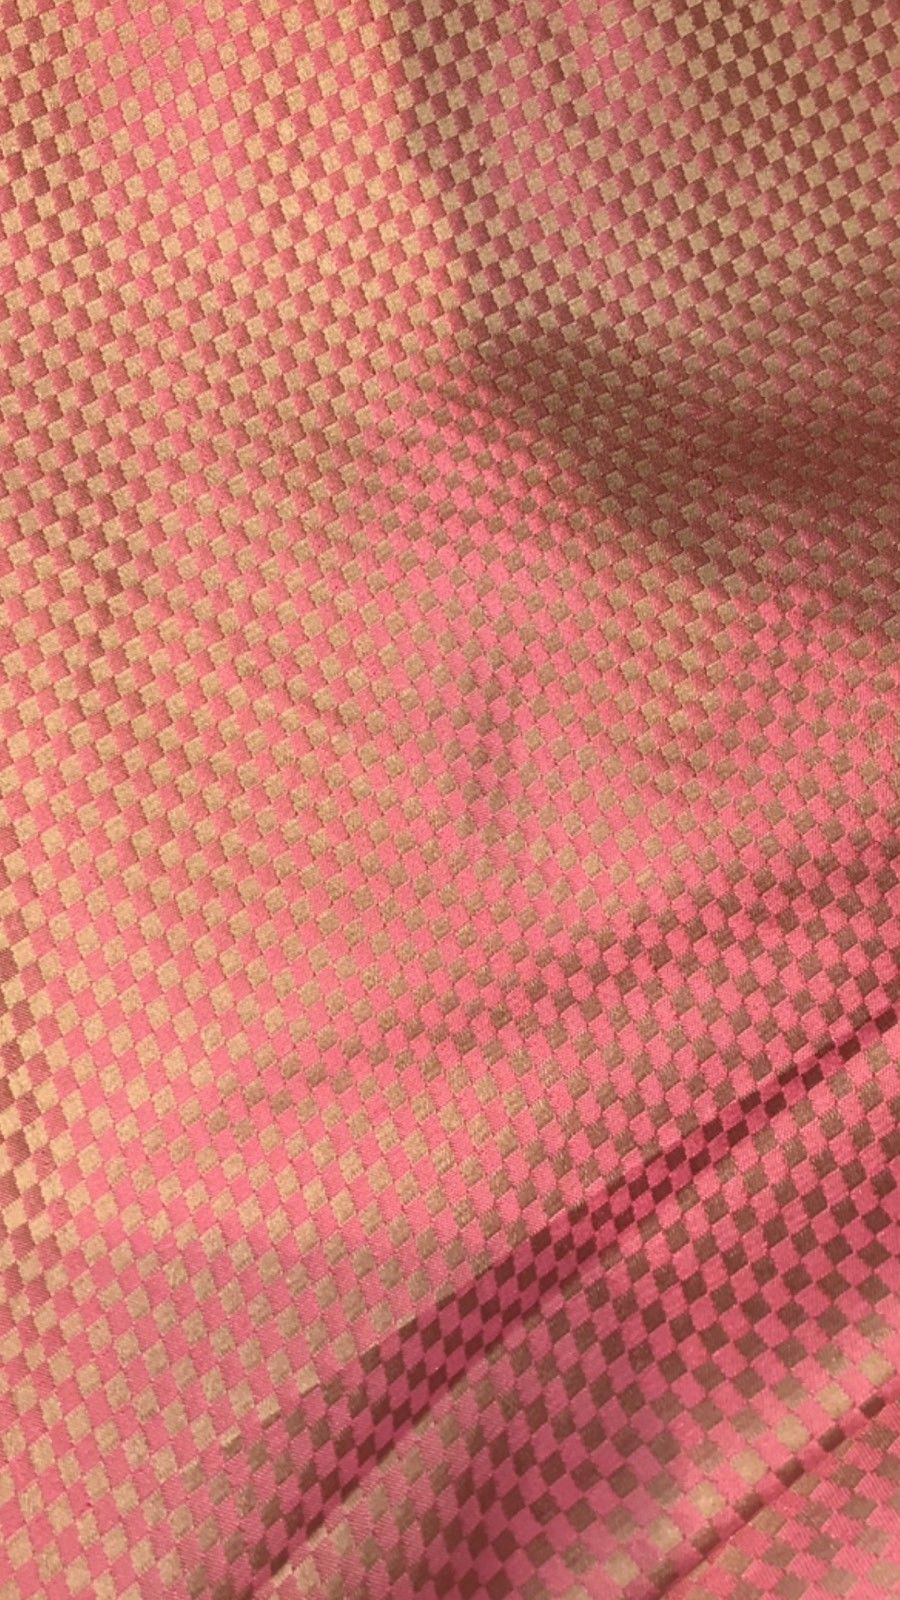 NEW! 100% Silk Taffeta Fabric - Coral And Iridescent Gold Checkered - Fancy Styles Fabric Boutique